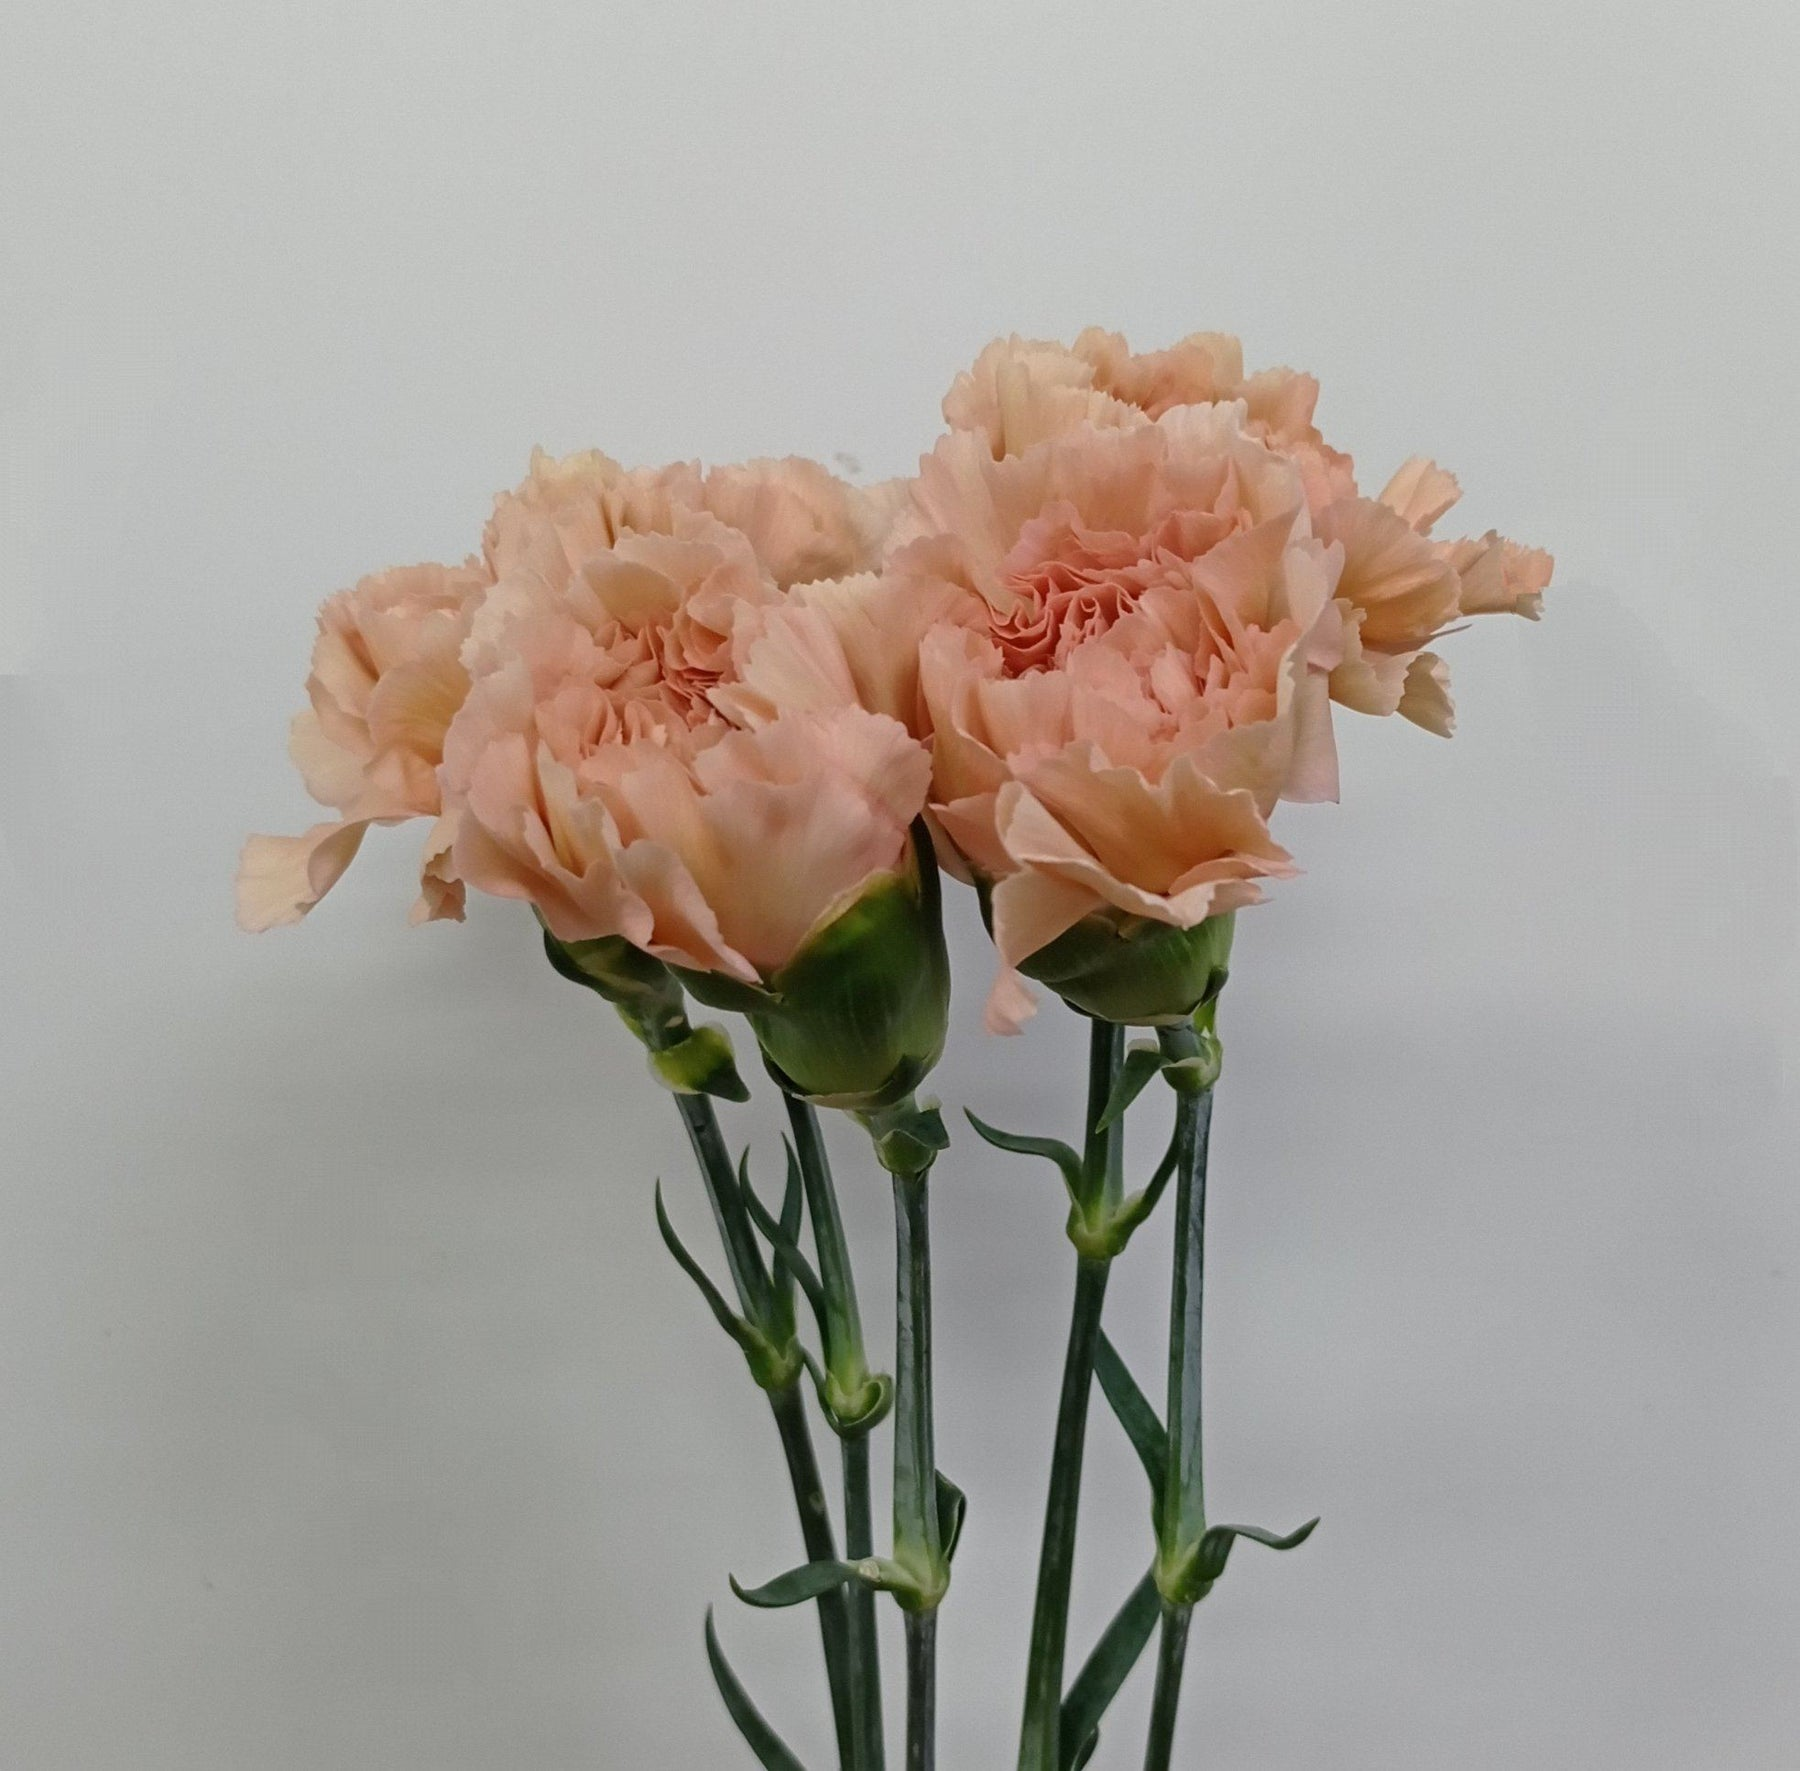 Carnation (Imported) - Caramel